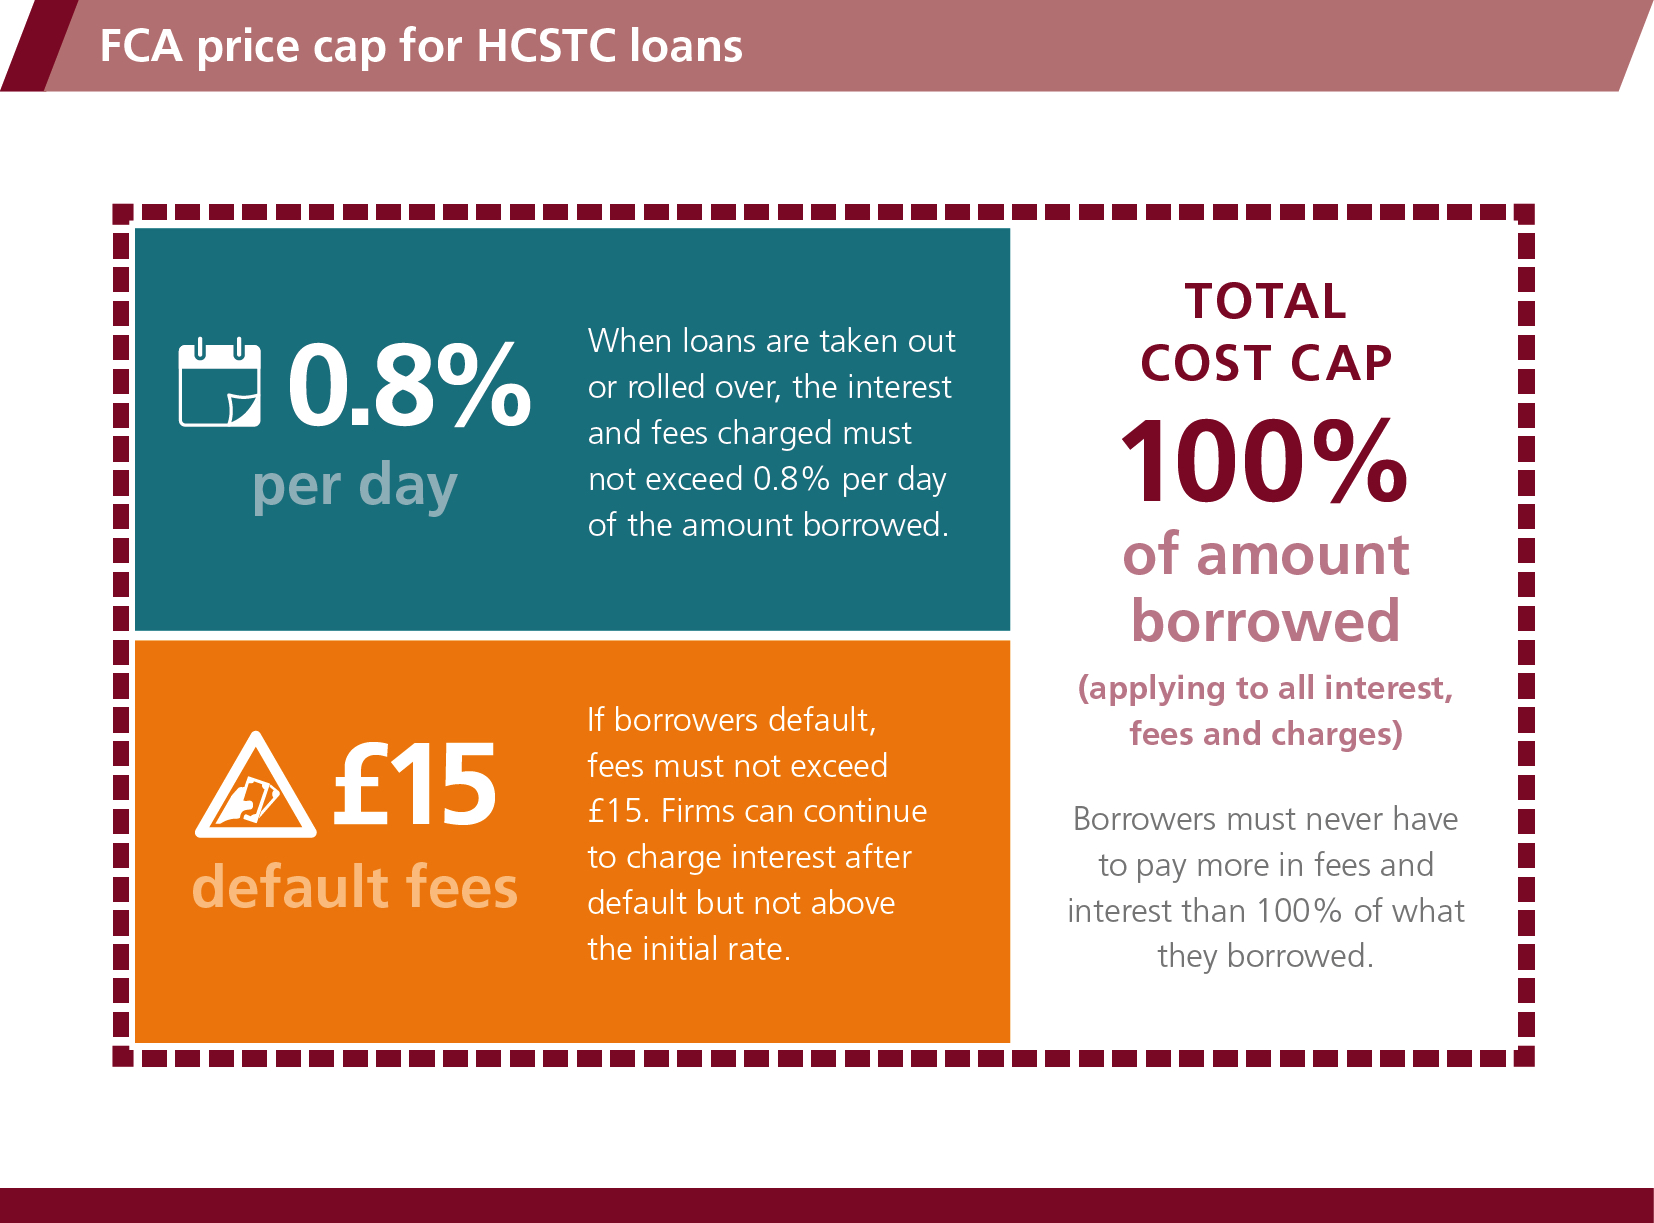 FCA price cap for HCSTC loans